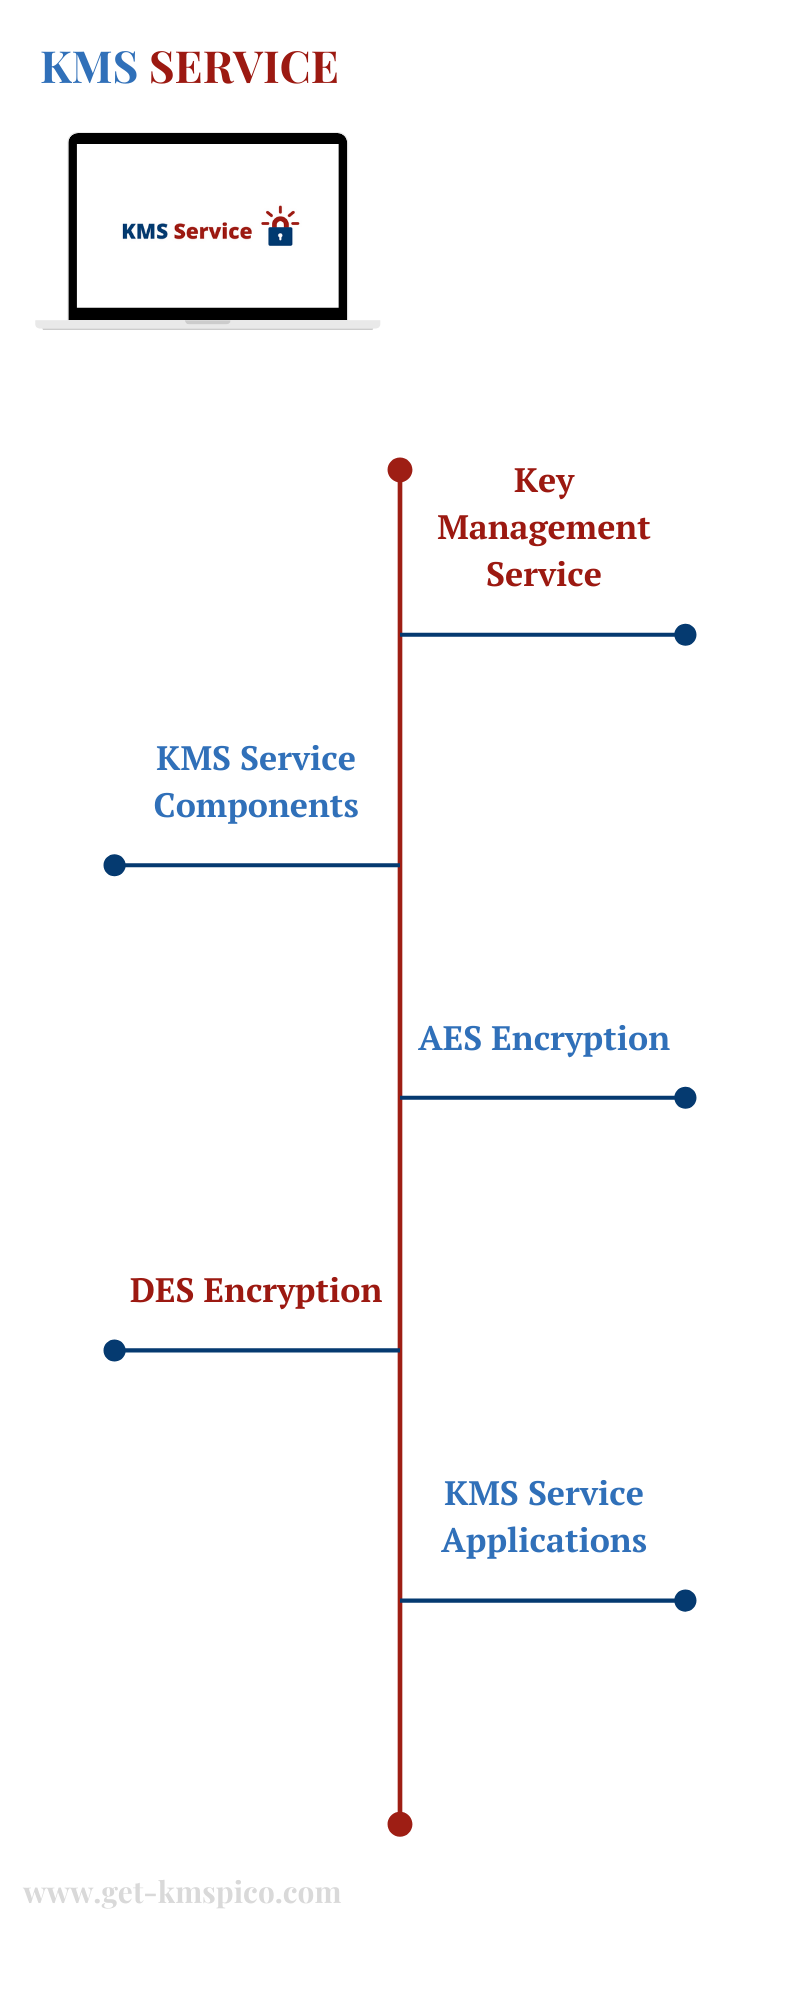 KMS-Service-Infographic